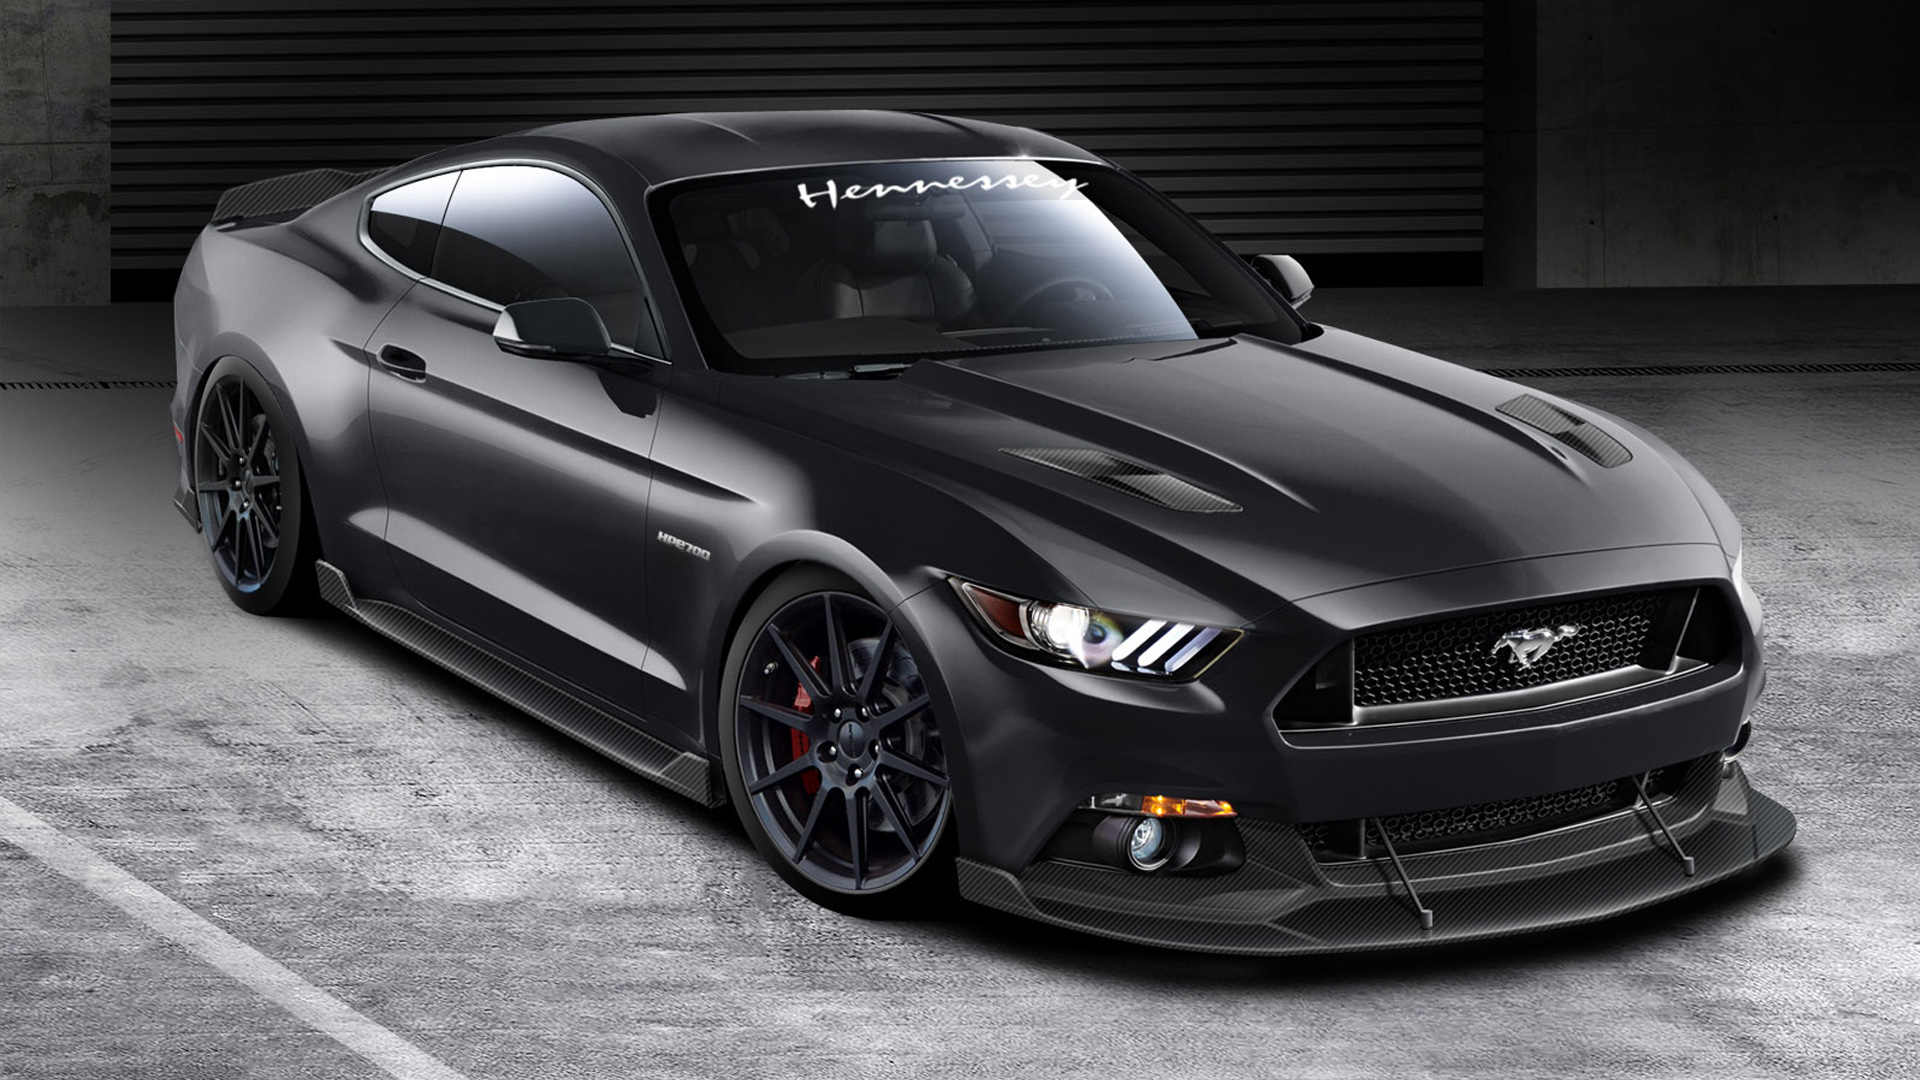 2015 hennessey ford mustang gt wallpaper | hd car wallpapers | id #4975